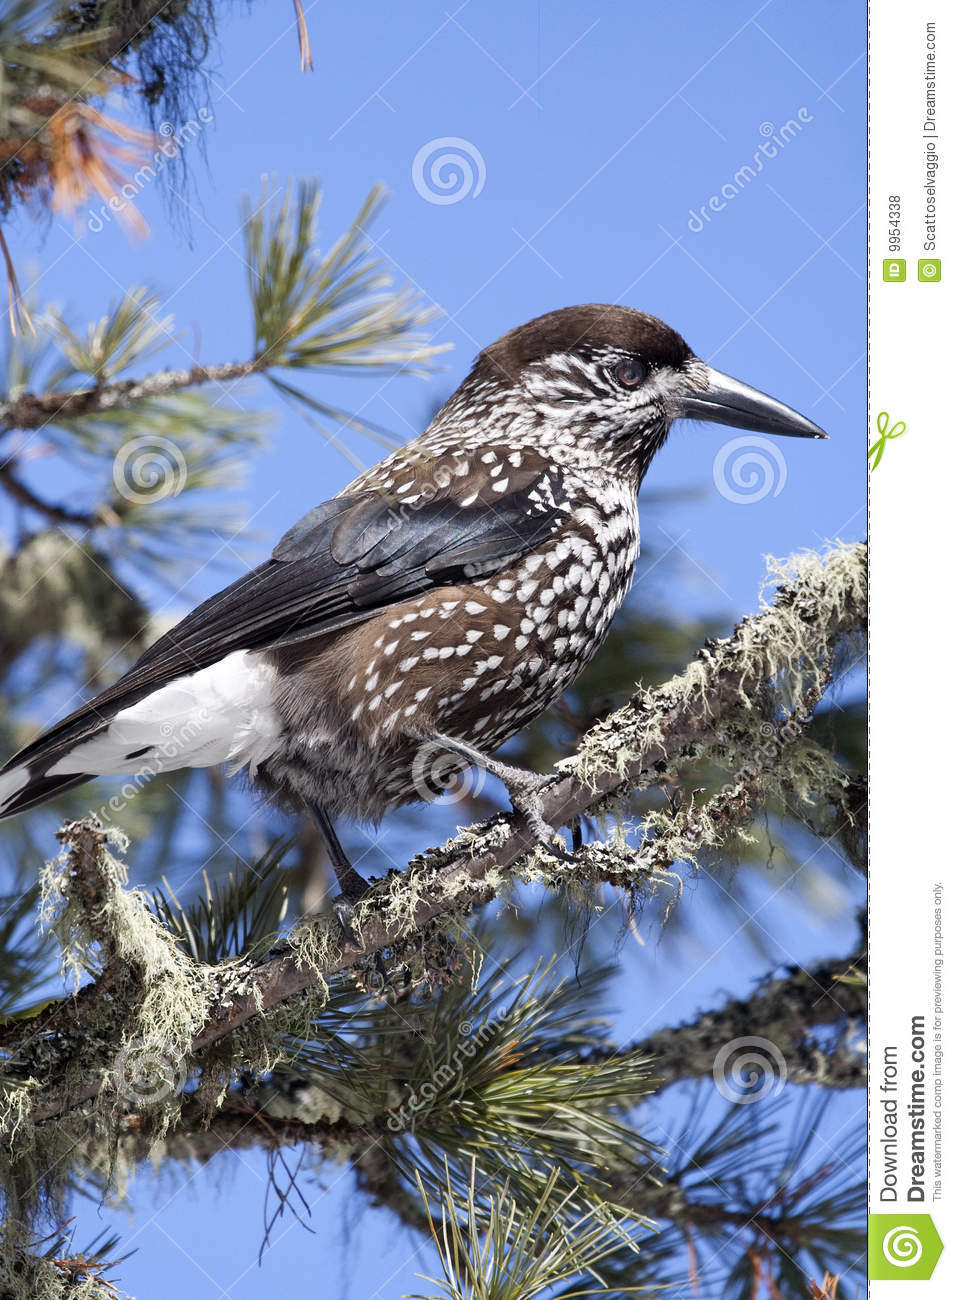 Spotted Nutcracker, Eurasian Nutcracker, or just Nutcracker (Nucifraga caryocatactes), on a branch of Swiss Pine or Arolla Pine (Pinus cembra) whose seed is nourished. The nutcracker is the emblem of a Swiss National Park (Engadin).